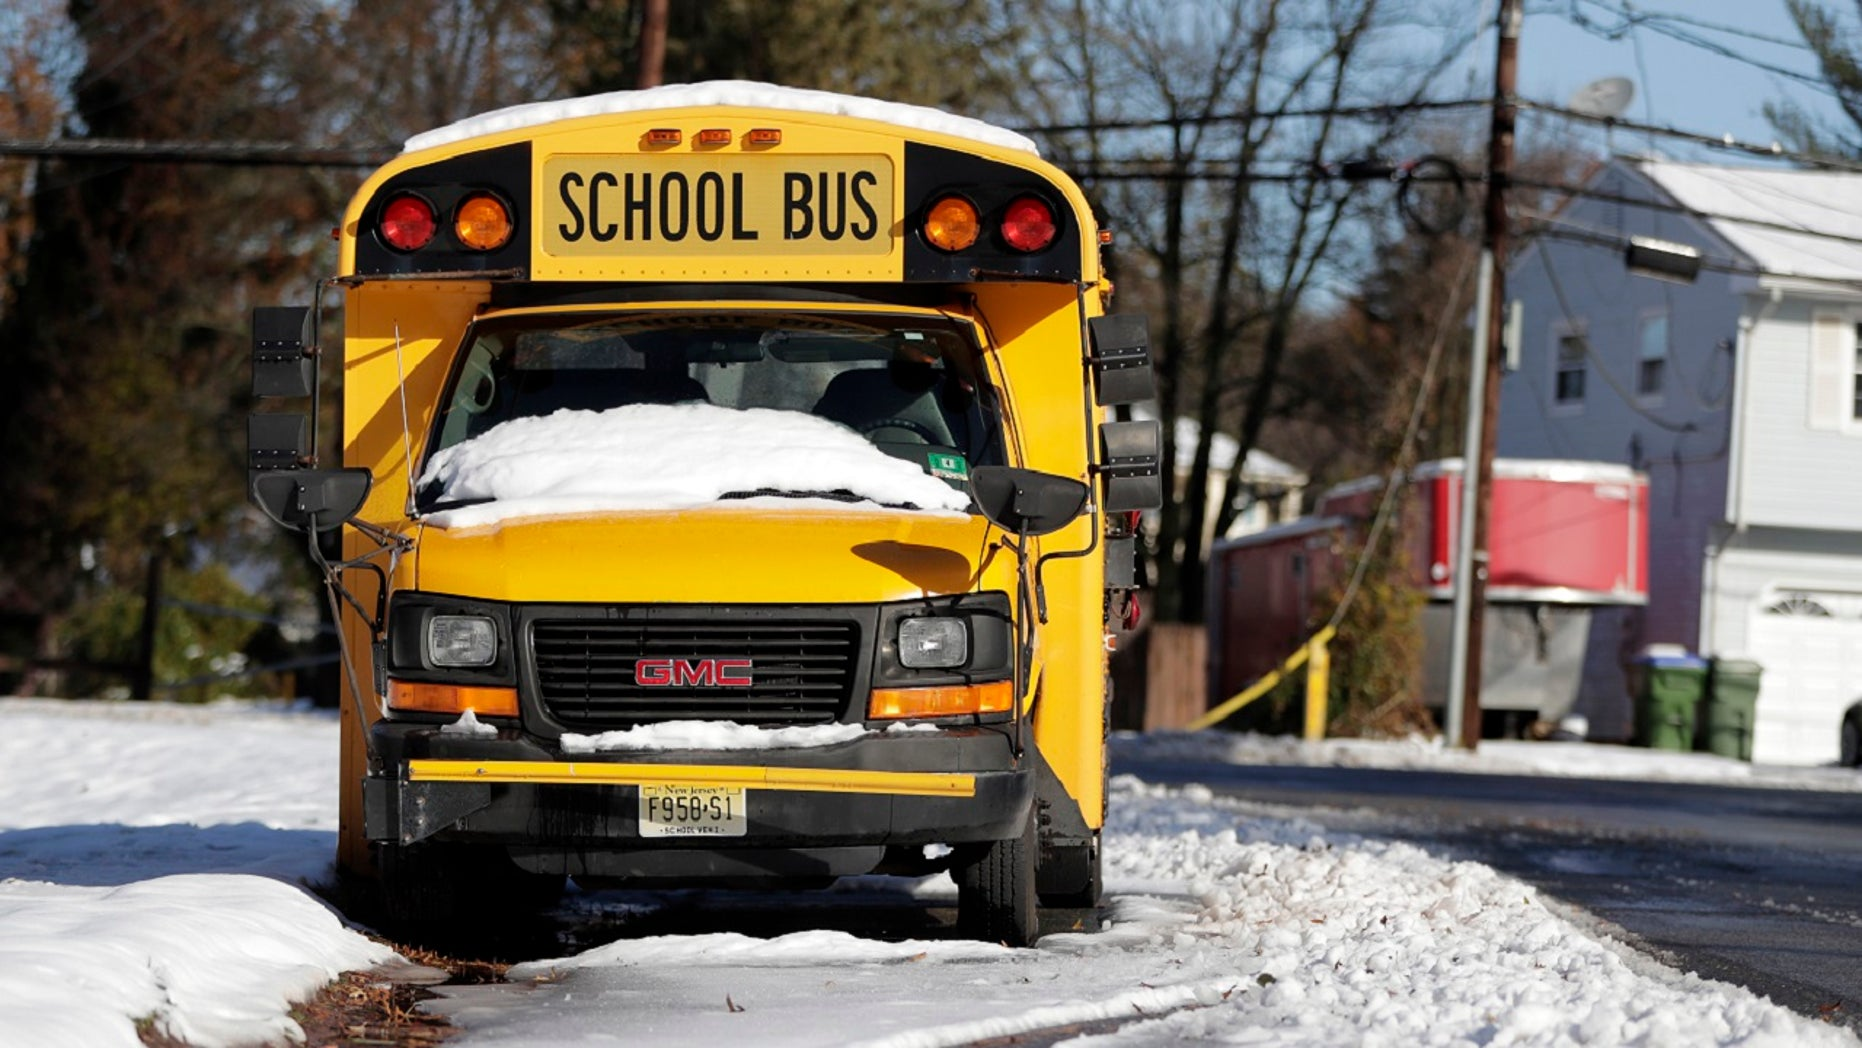 Snow is seen on the windshield of a school bus parked on the side of the street the morning following a snowstorm, Friday, Nov. 16, 2018, in Edison, N.J.